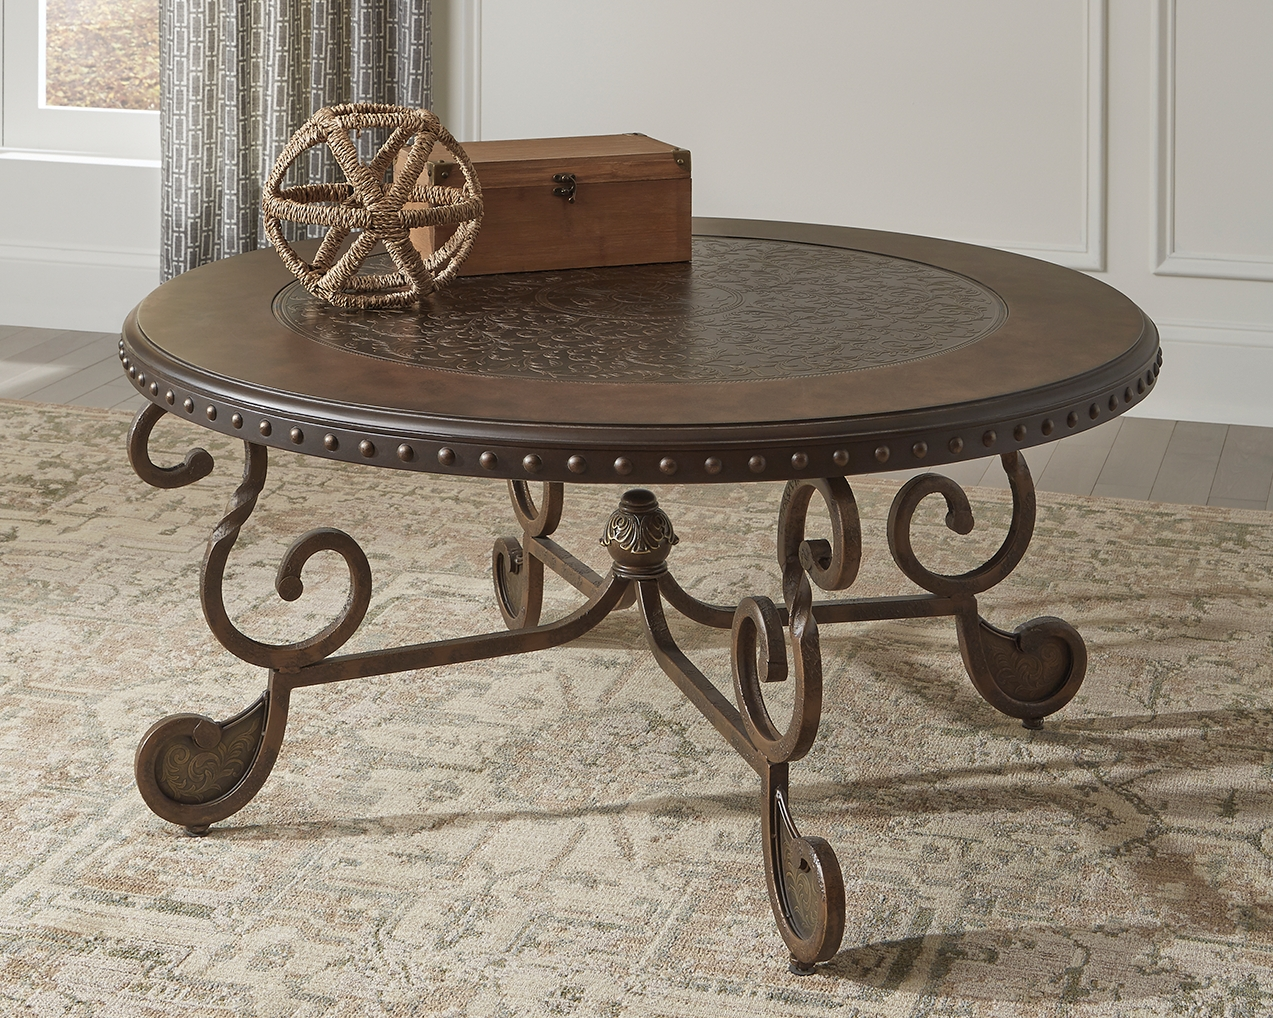 rafferty coffee table dark brown products rustic end tables repainting bedroom furniture glass and metal nest dining room brands kmart bike seat all kitchen best paint for chairs